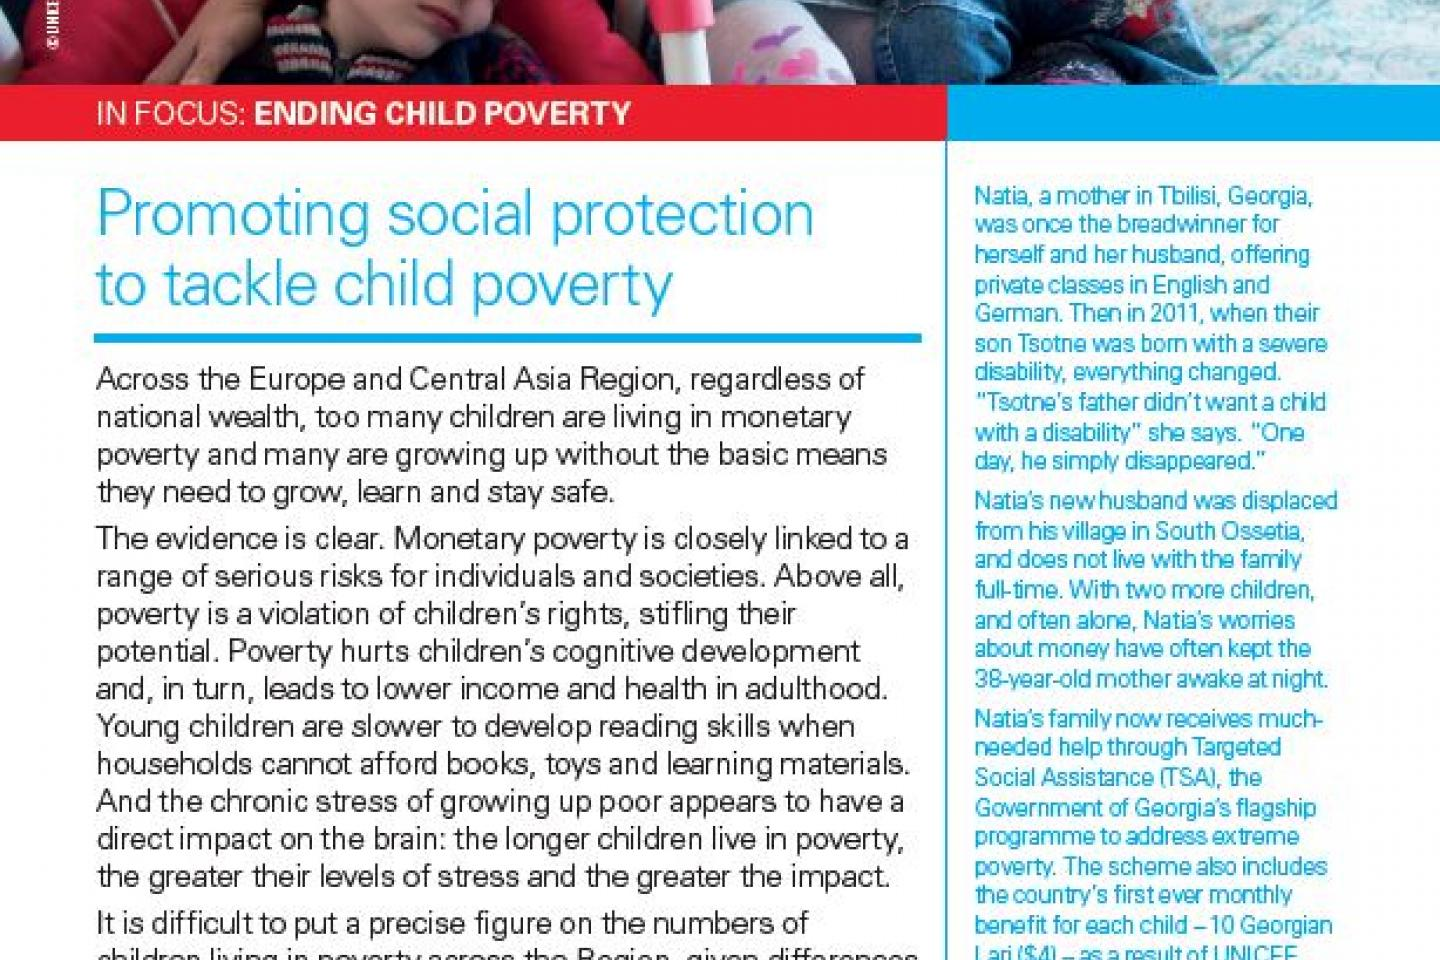 In Focus: Ending Child Poverty | UNICEF Europe and Central Asia